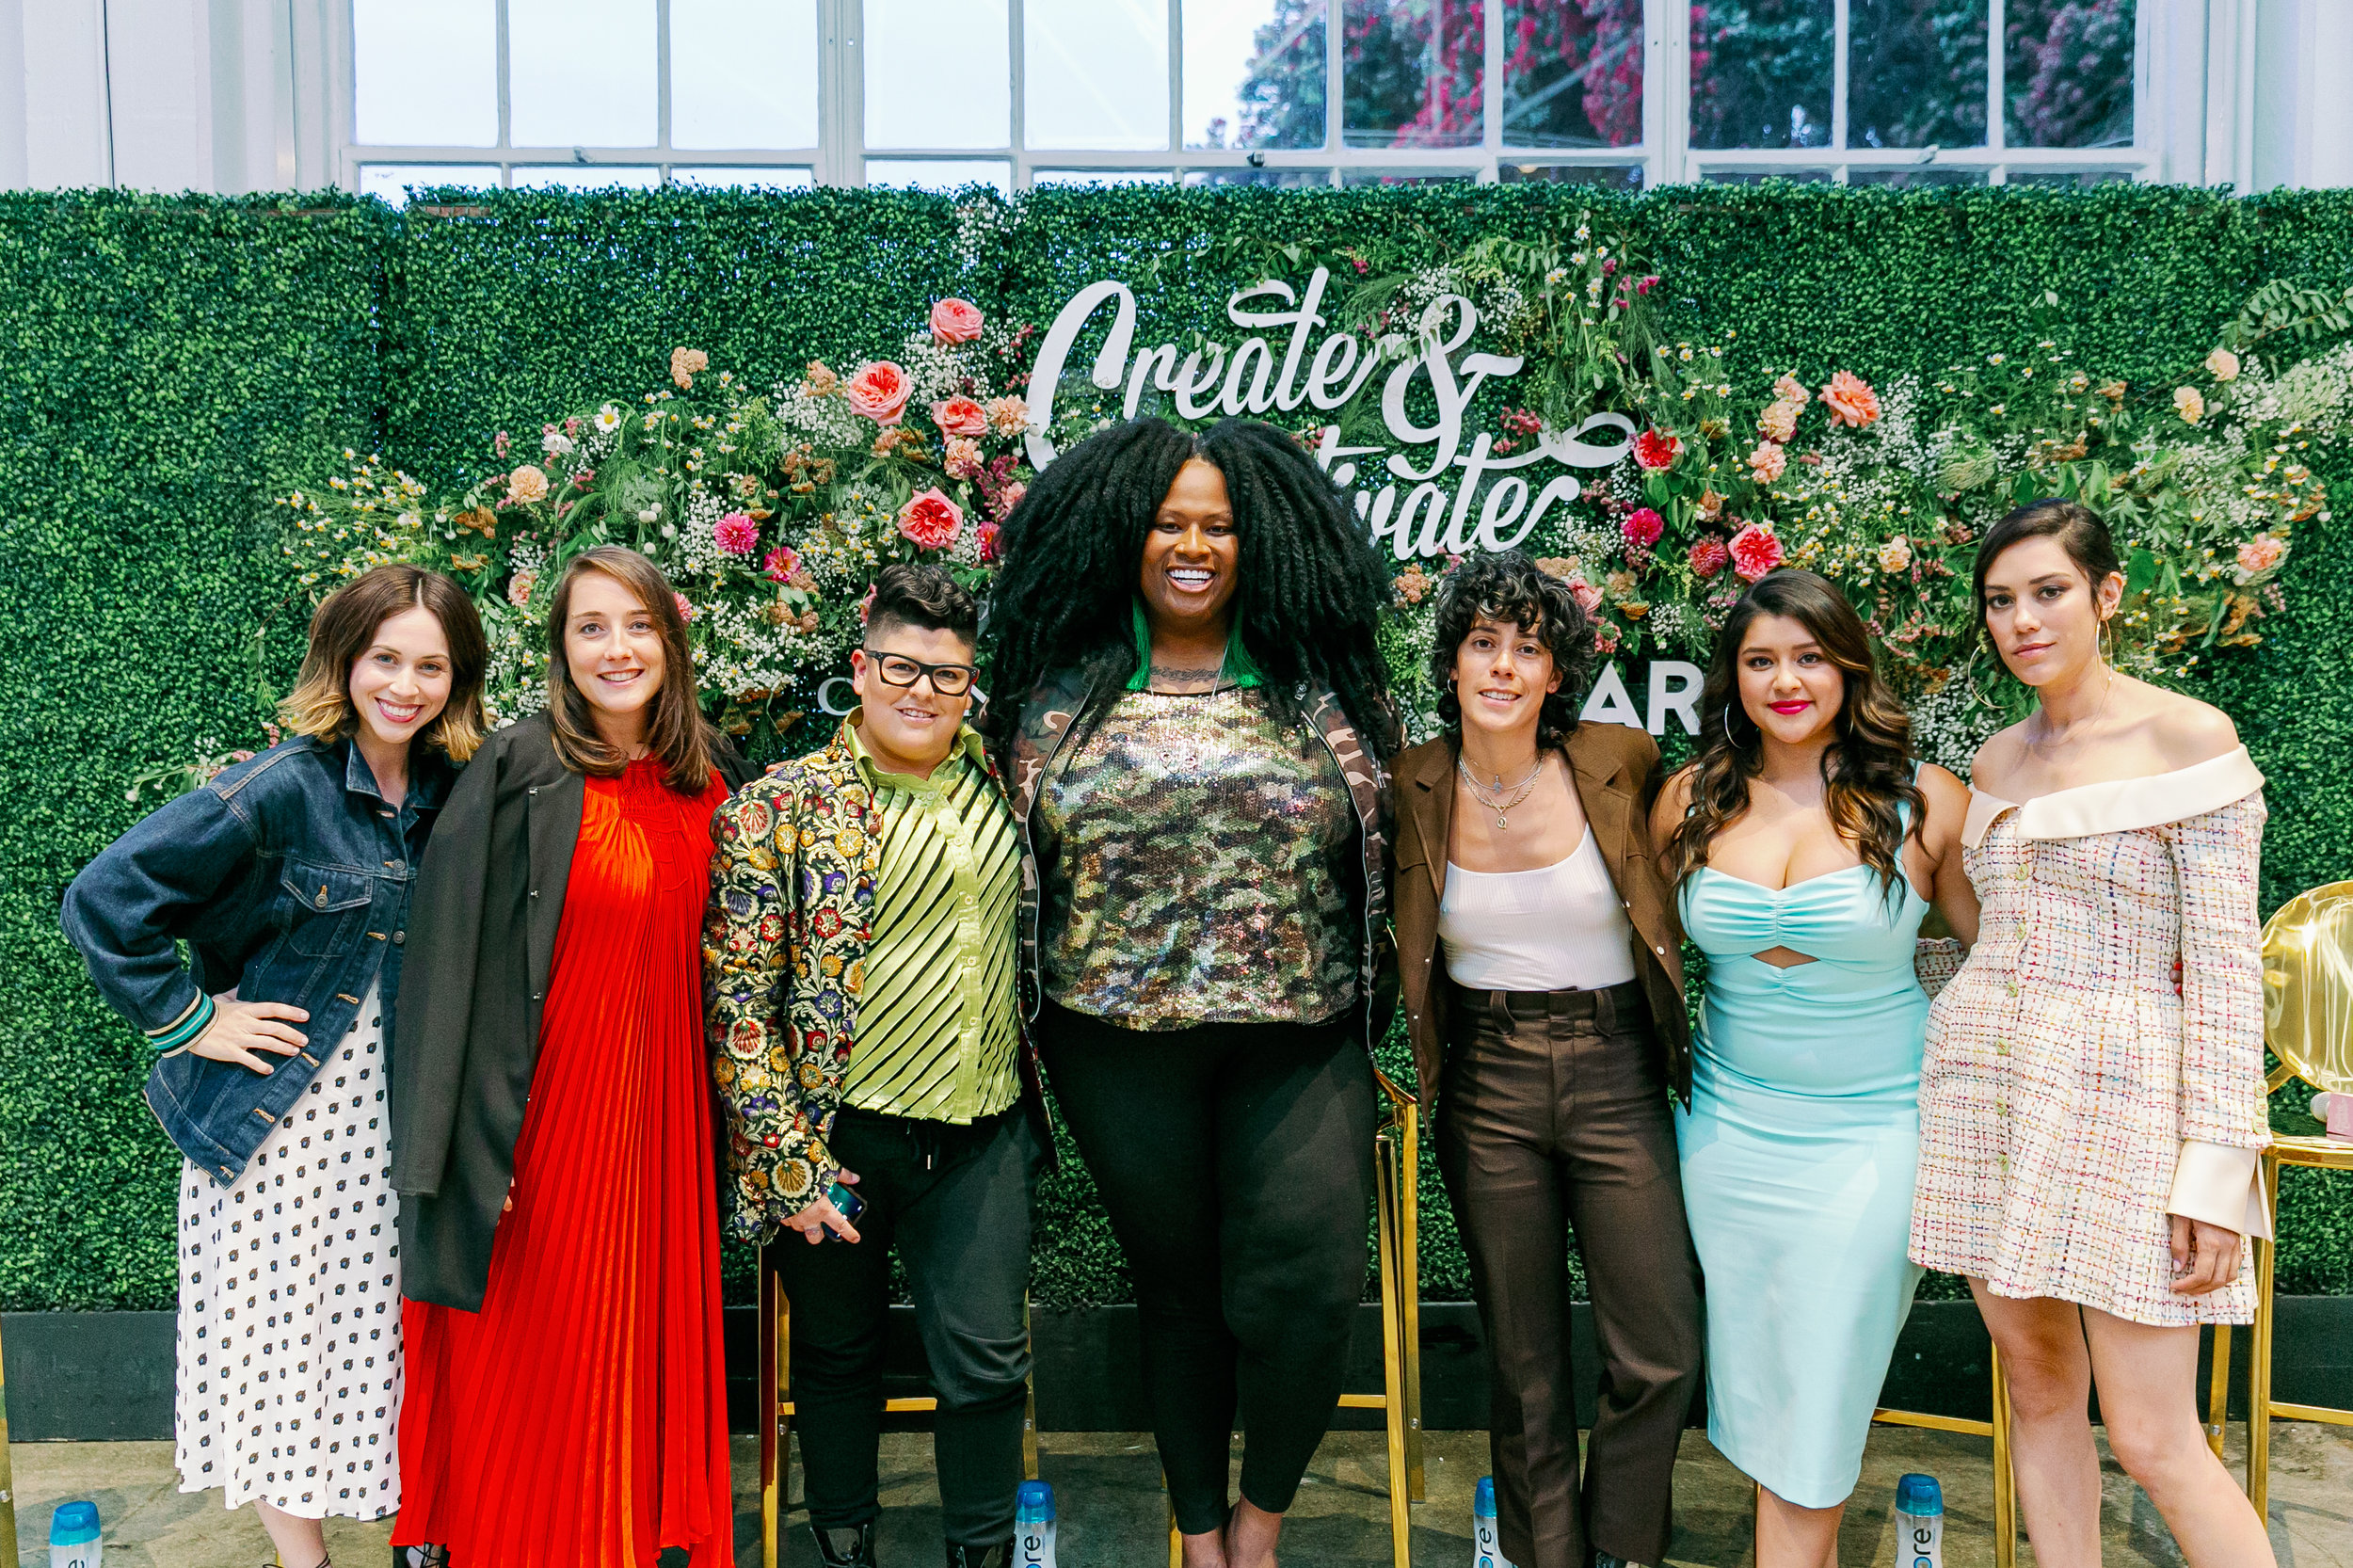 Create & Cultivate's Summer Traveling Speaker Series featuring Founder and CEO of Create & Cultivate Jaclyn Johnson; Chandon's Pauline Lhote, VIDA's Ser Anzoategui, Civil Rights activist and #ThriveOver35 creator Ashlee Marie Preston, VIDA's Roberta Colindrez, Chelsea Rendon, and Mishel Prada.